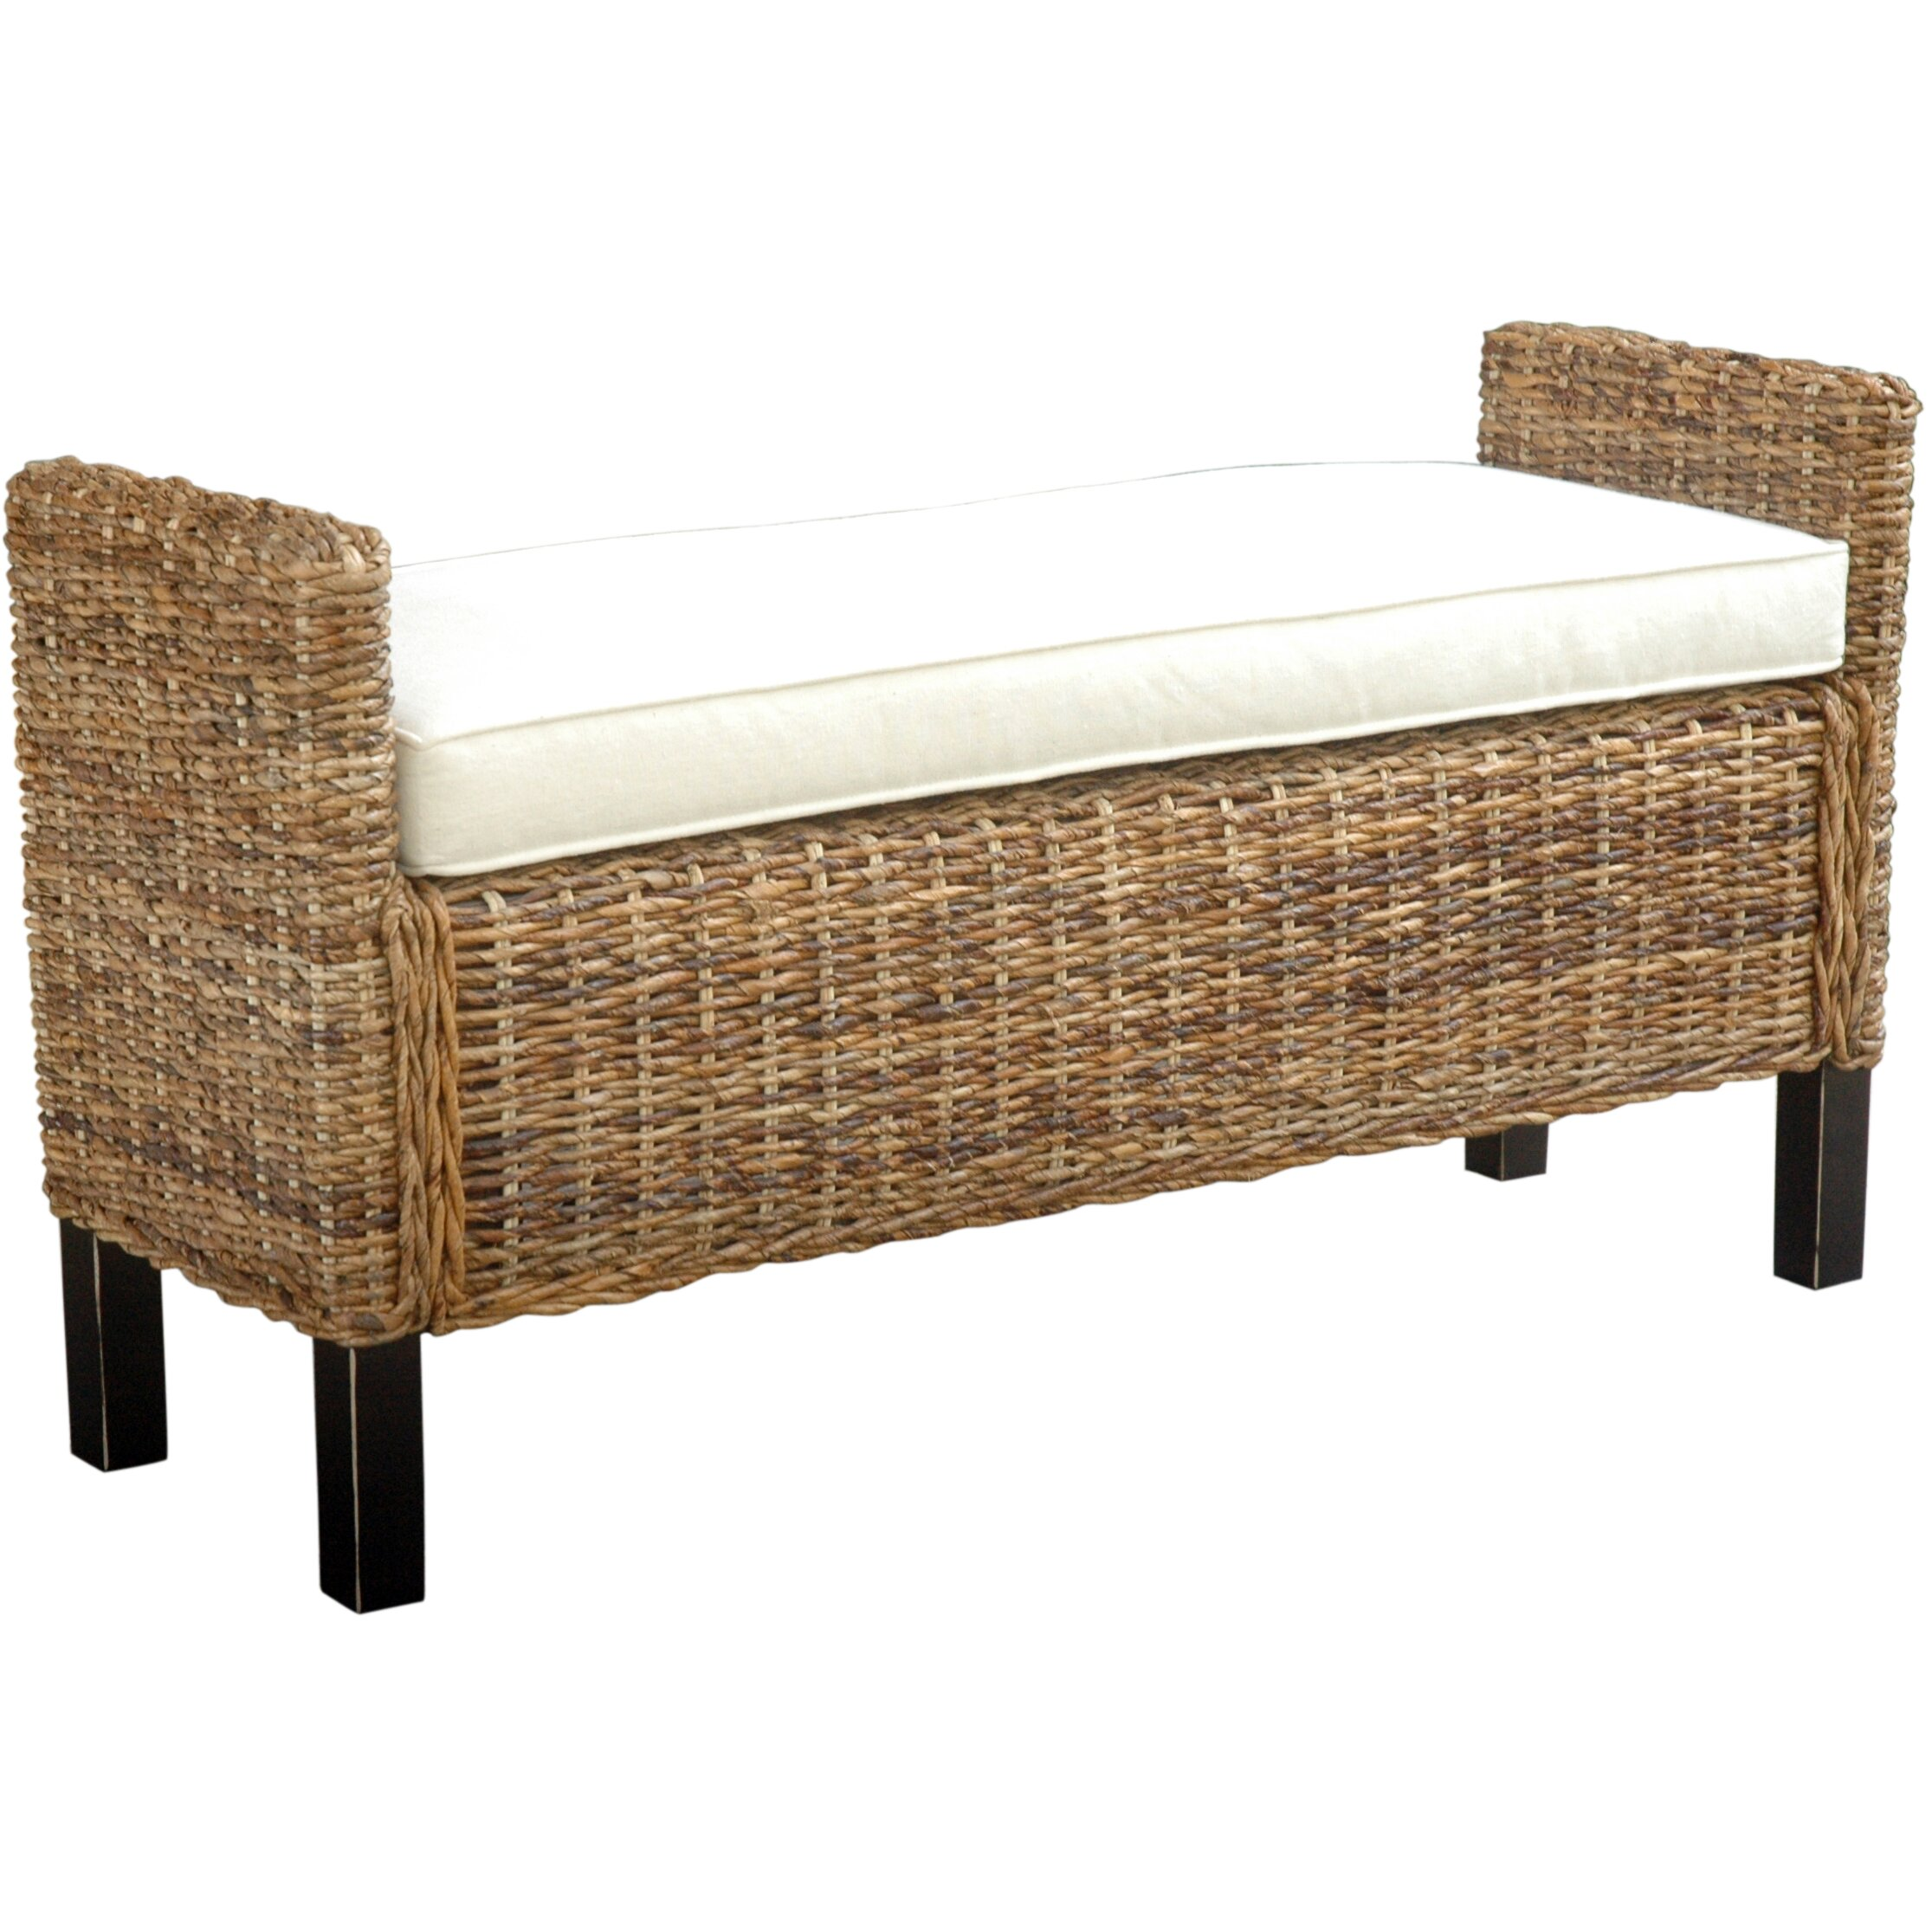 Jeffan Gabrillo Wood Bedroom Bench Reviews Wayfair